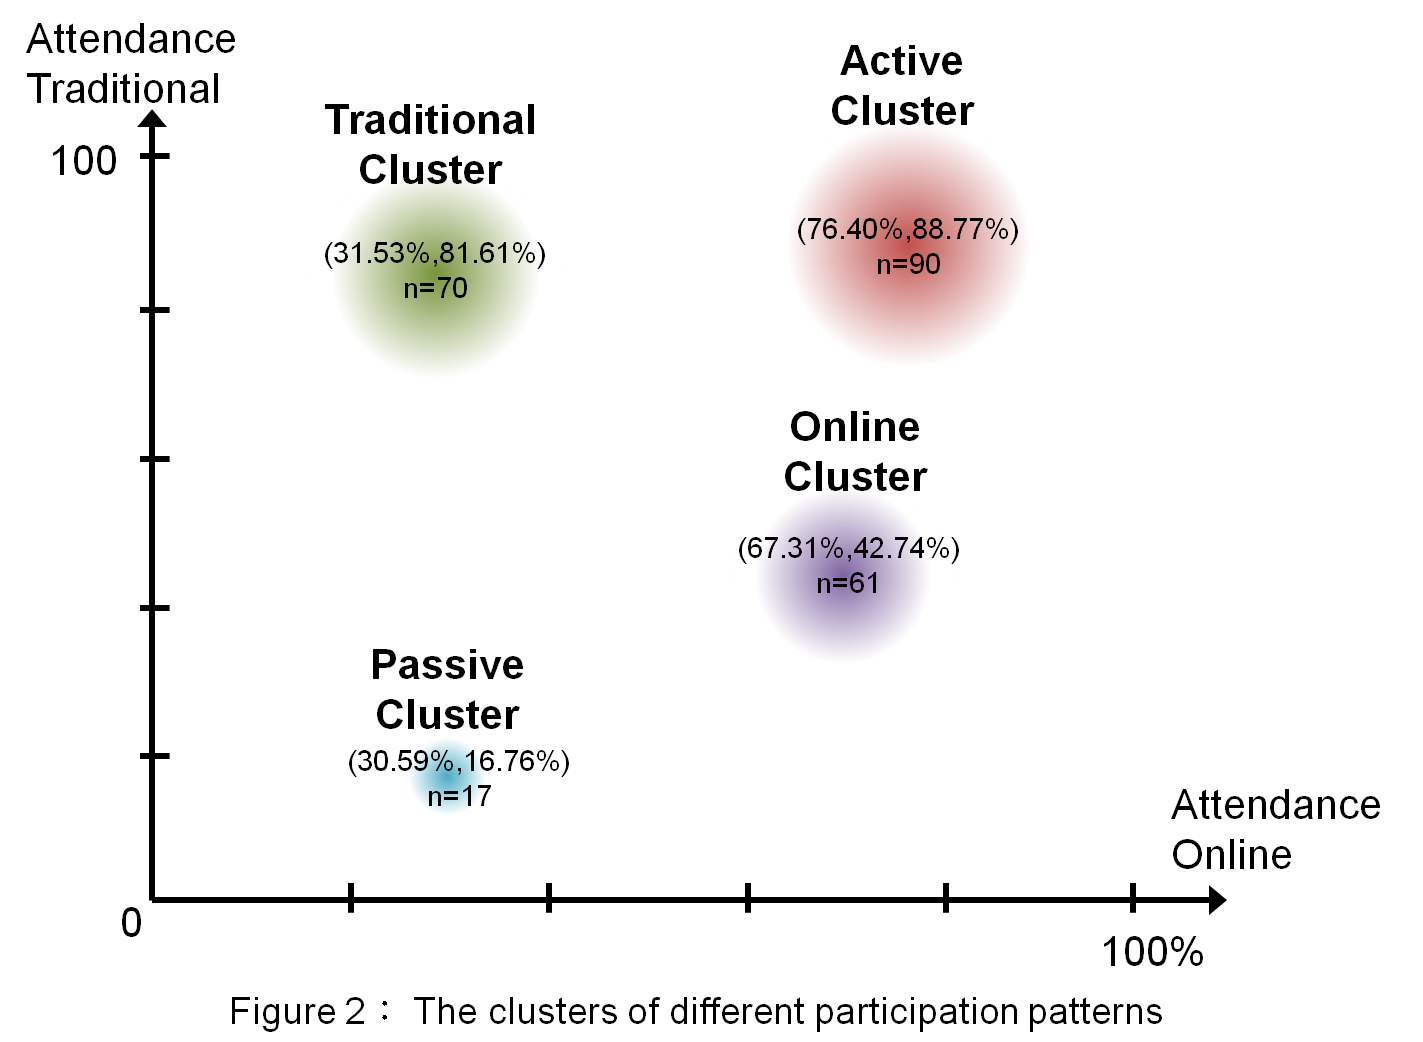 Figure 2?The clusters of different participation patterns